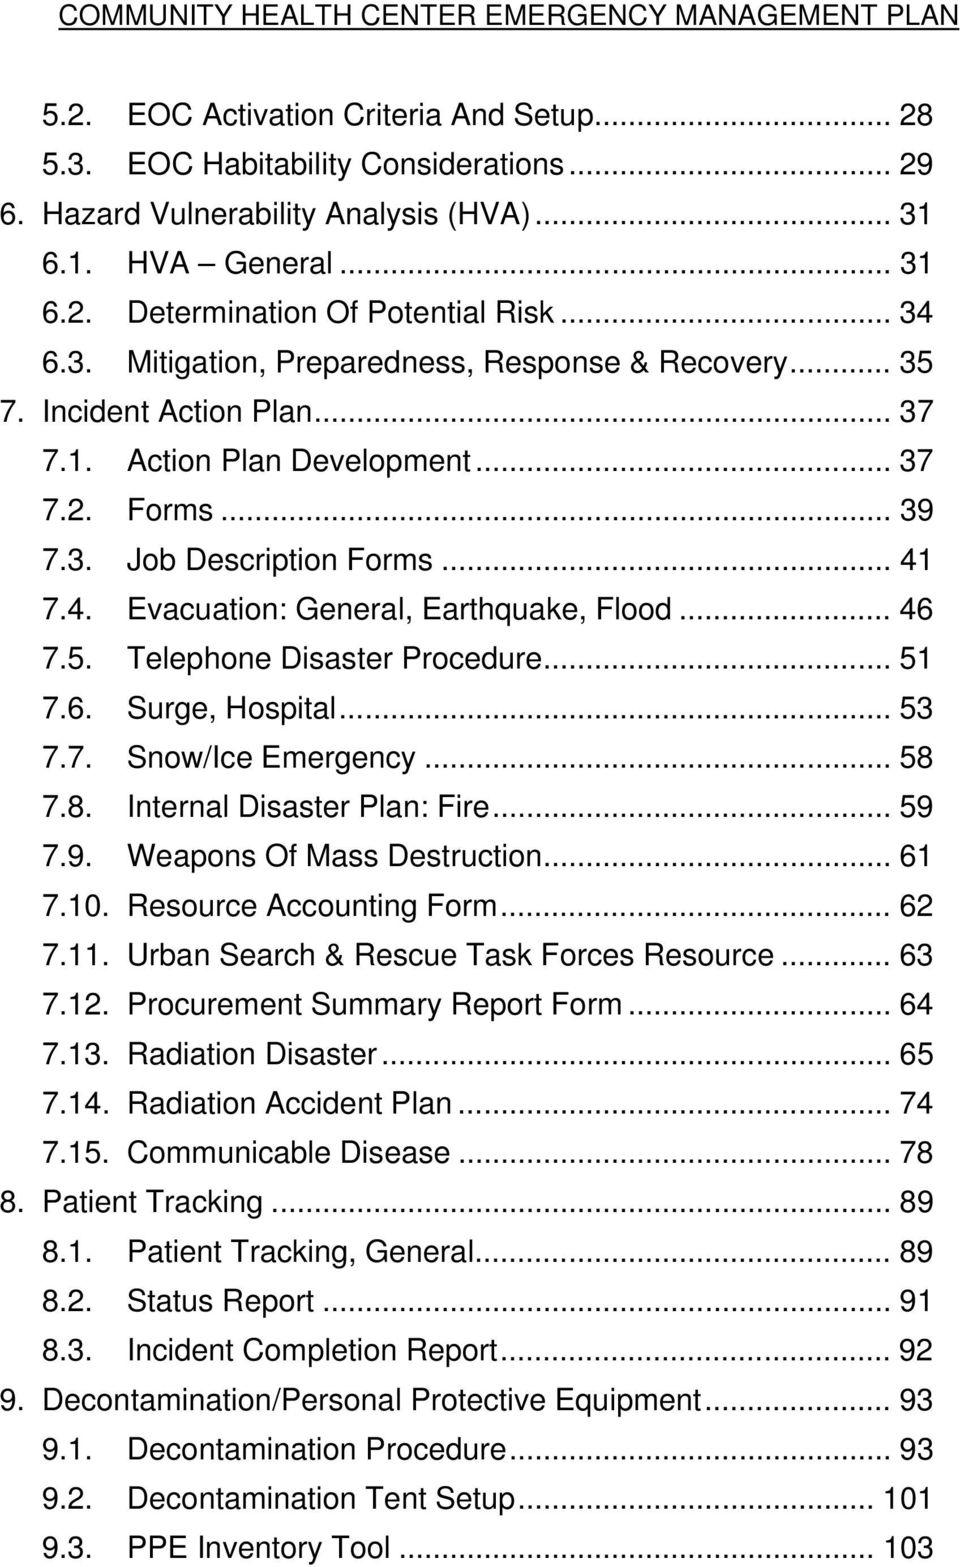 7.4. Evacuation: General, Earthquake, Flood... 46 7.5. Telephone Disaster Procedure... 51 7.6. Surge, Hospital... 53 7.7. Snow/Ice Emergency... 58 7.8. Internal Disaster Plan: Fire... 59